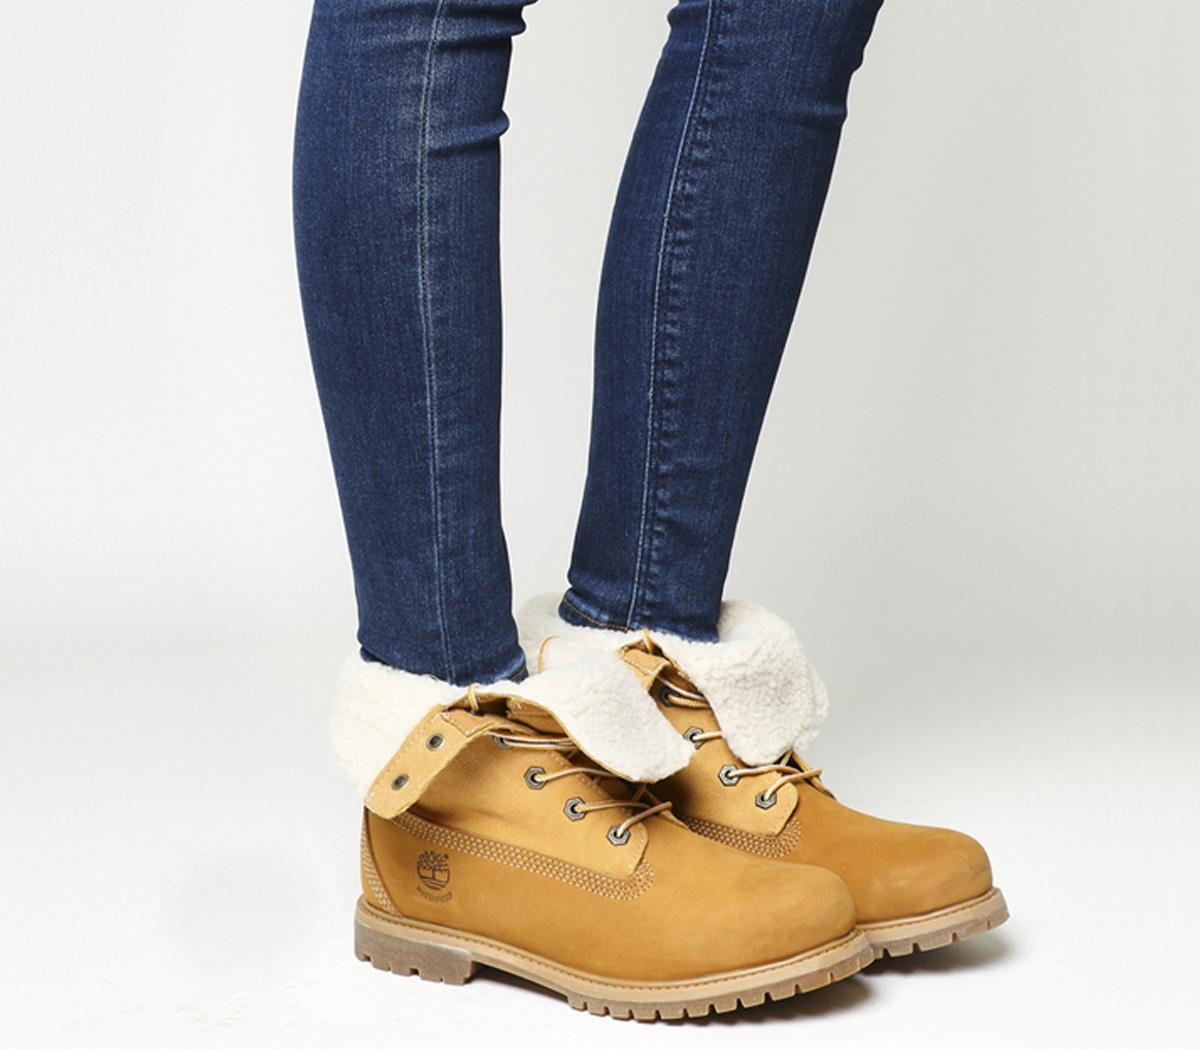 Timberland Teddy Fleece Boots Wheat Ankle Boots